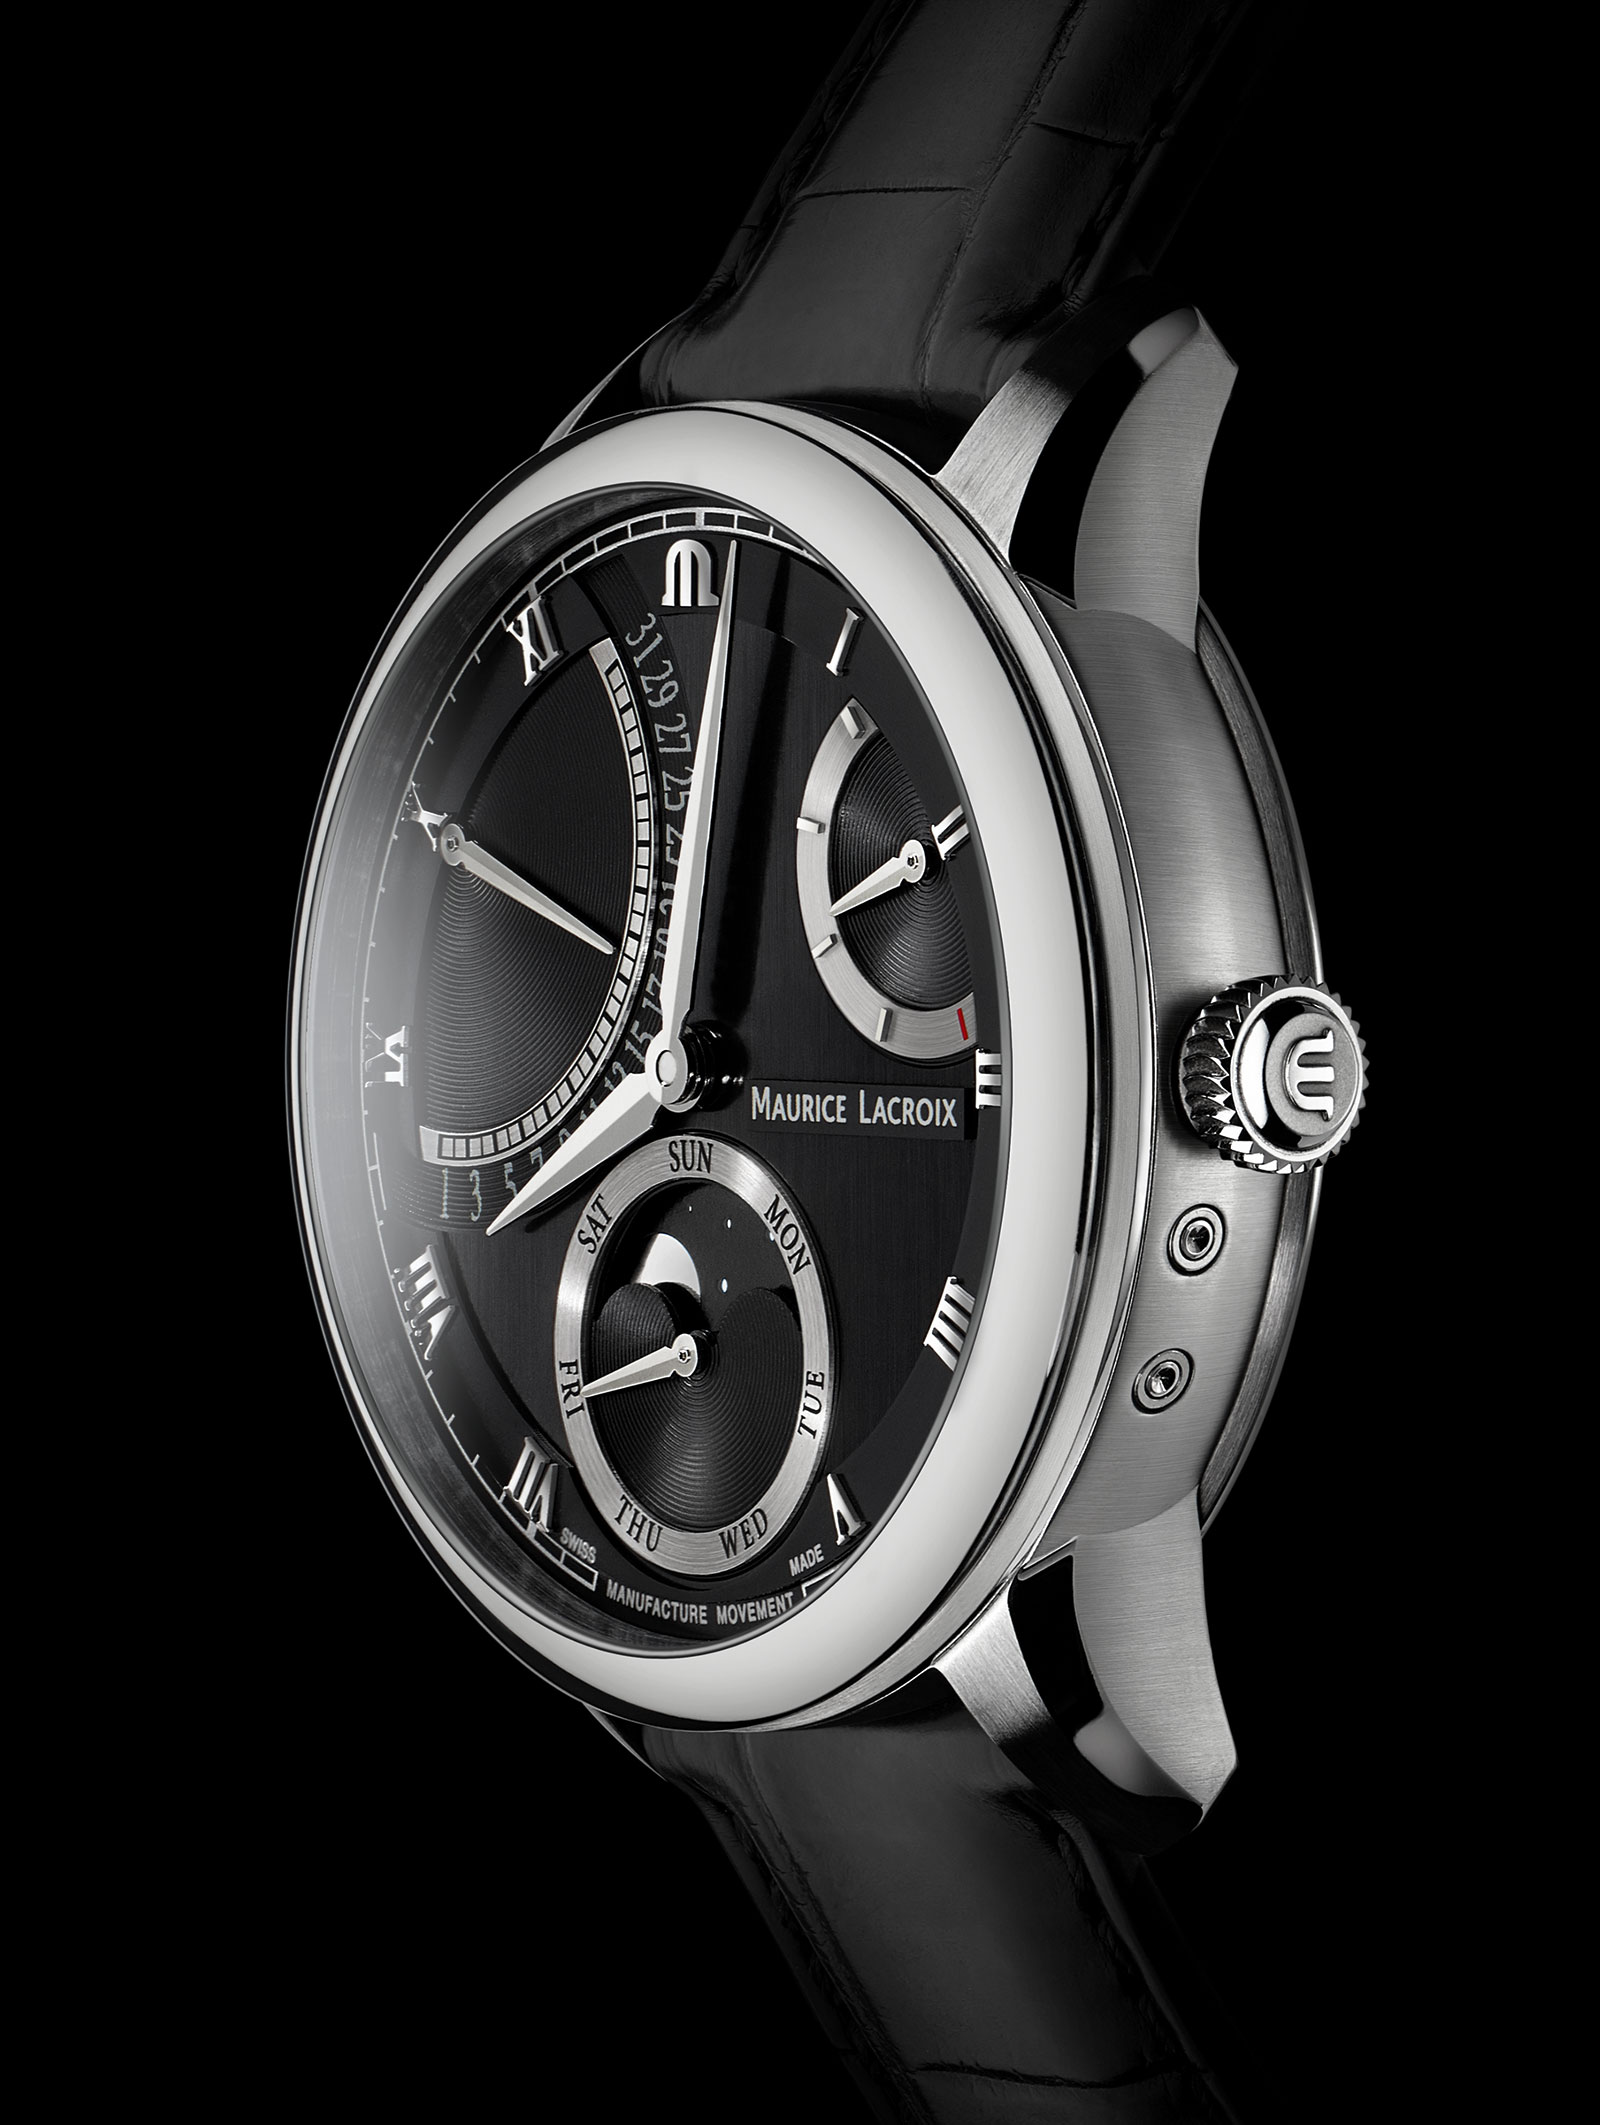 Maurice Lacroix Masterpiece Moon Retrograde 3